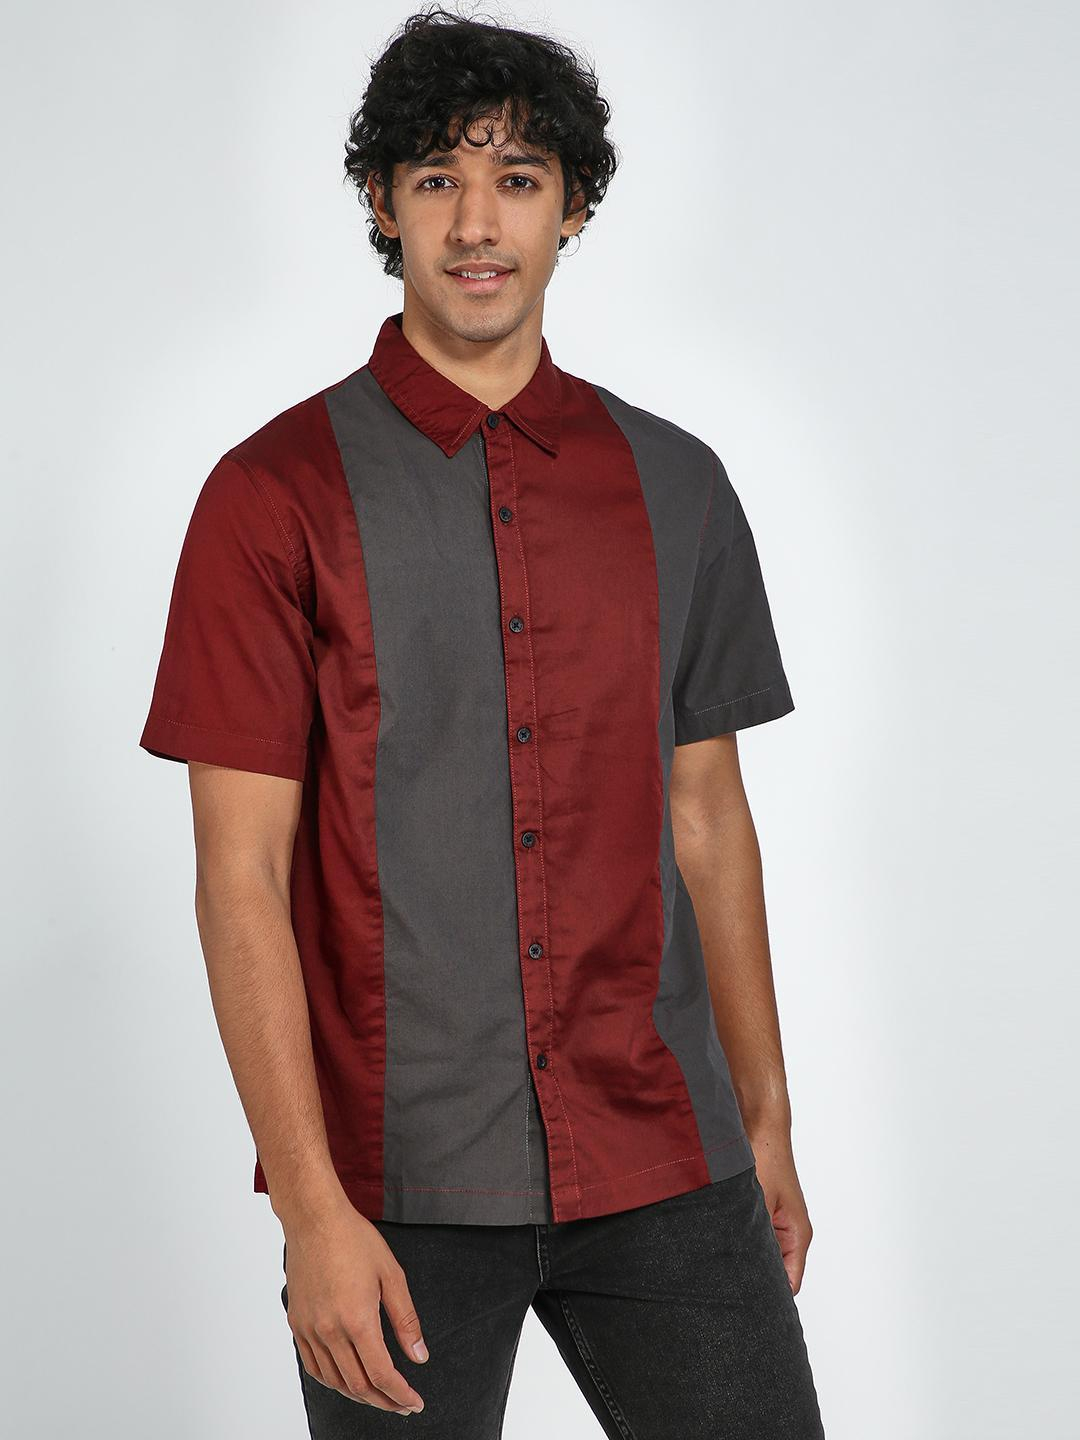 Blue Saint Grey/Red Colour Block Casual Shirt 1